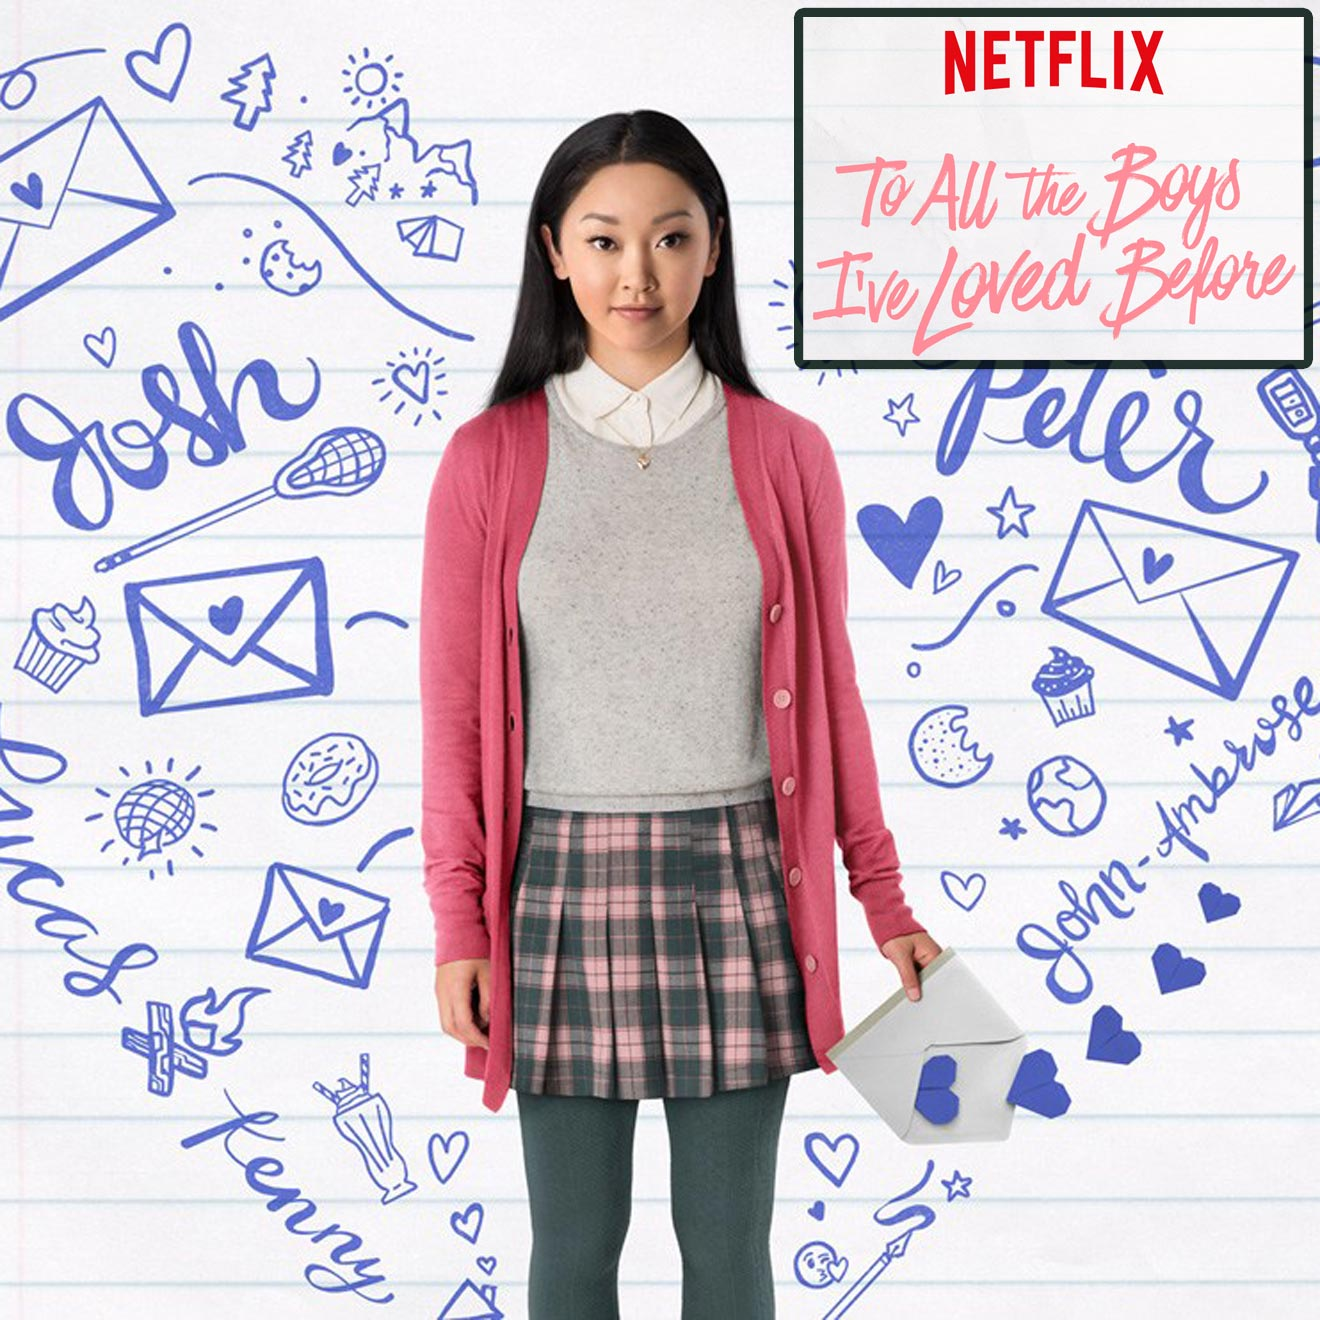 """To All The Boys I've Loved Before"": Starttermin für Teil 2 steht fest!"